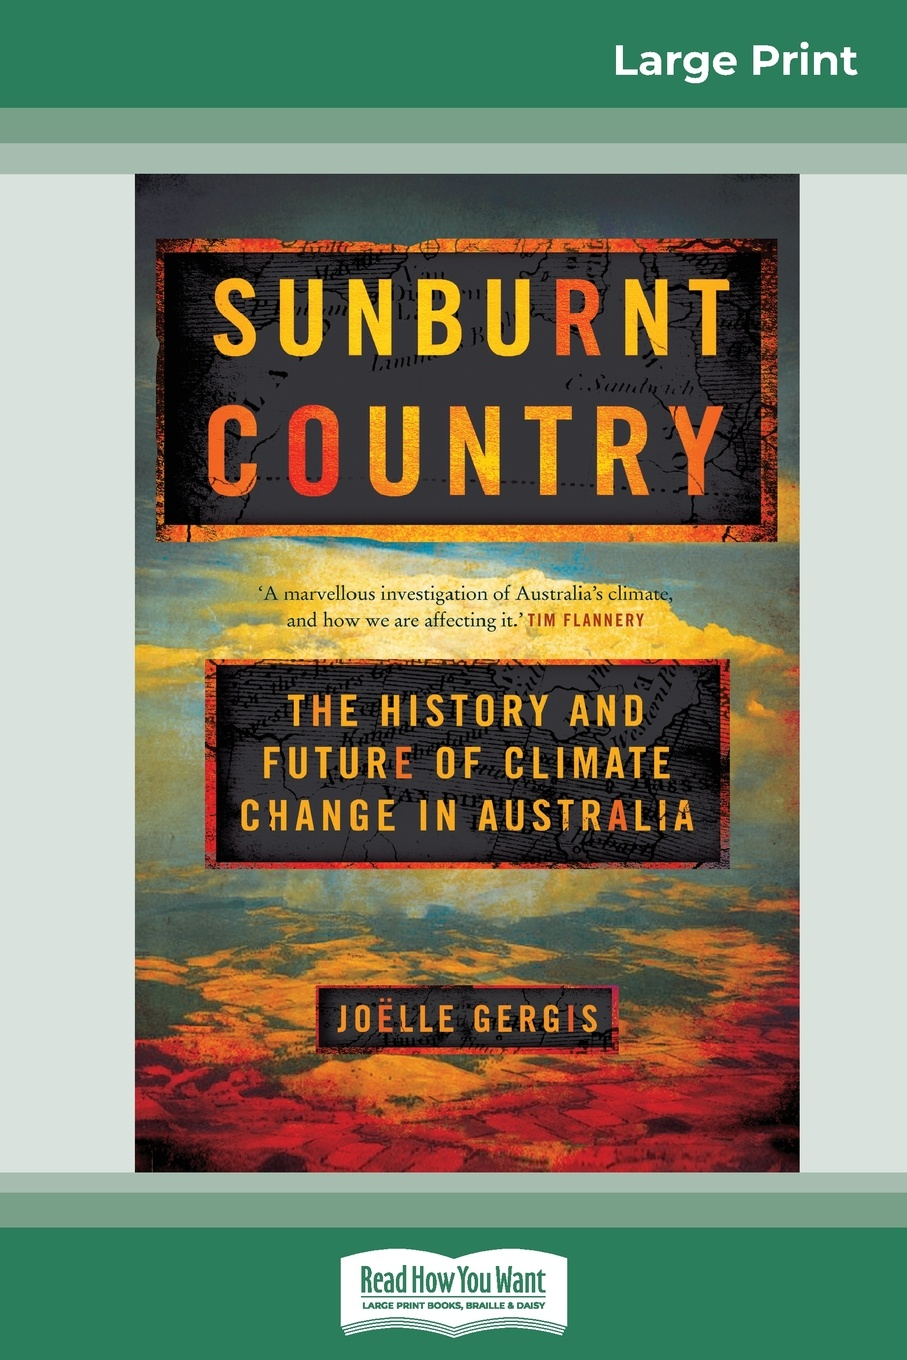 JoÃlle Gergis Sunburnt Country. The History and Future of Climate Change in Australia (16pt Large Print Edition)